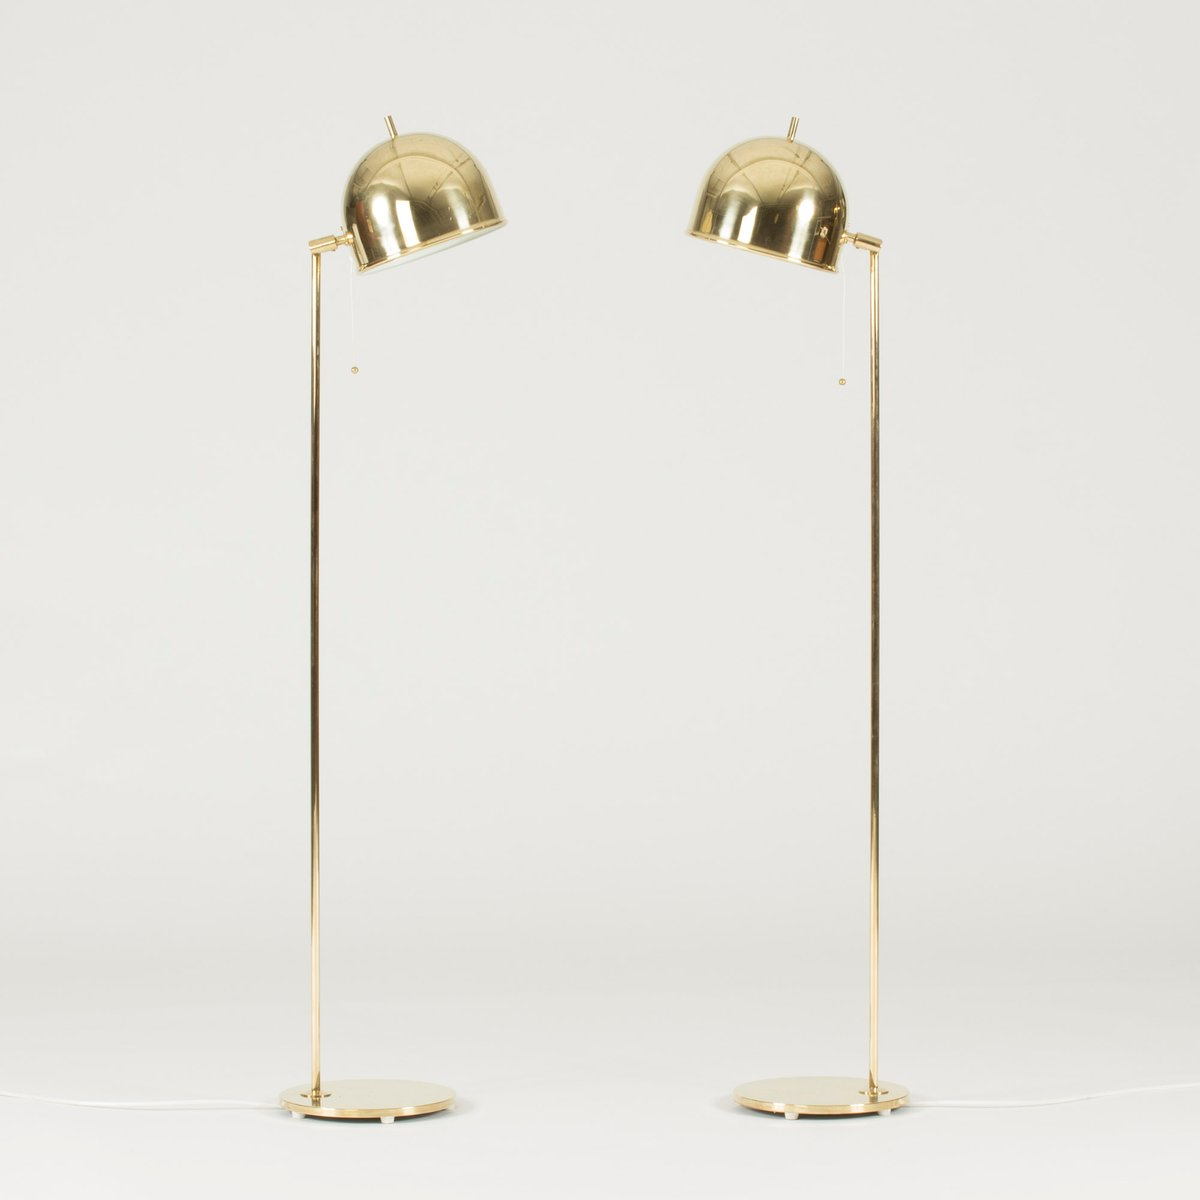 Brass floor lamps from bergboms 1950s set of 2 for sale for 1950s floor lamps